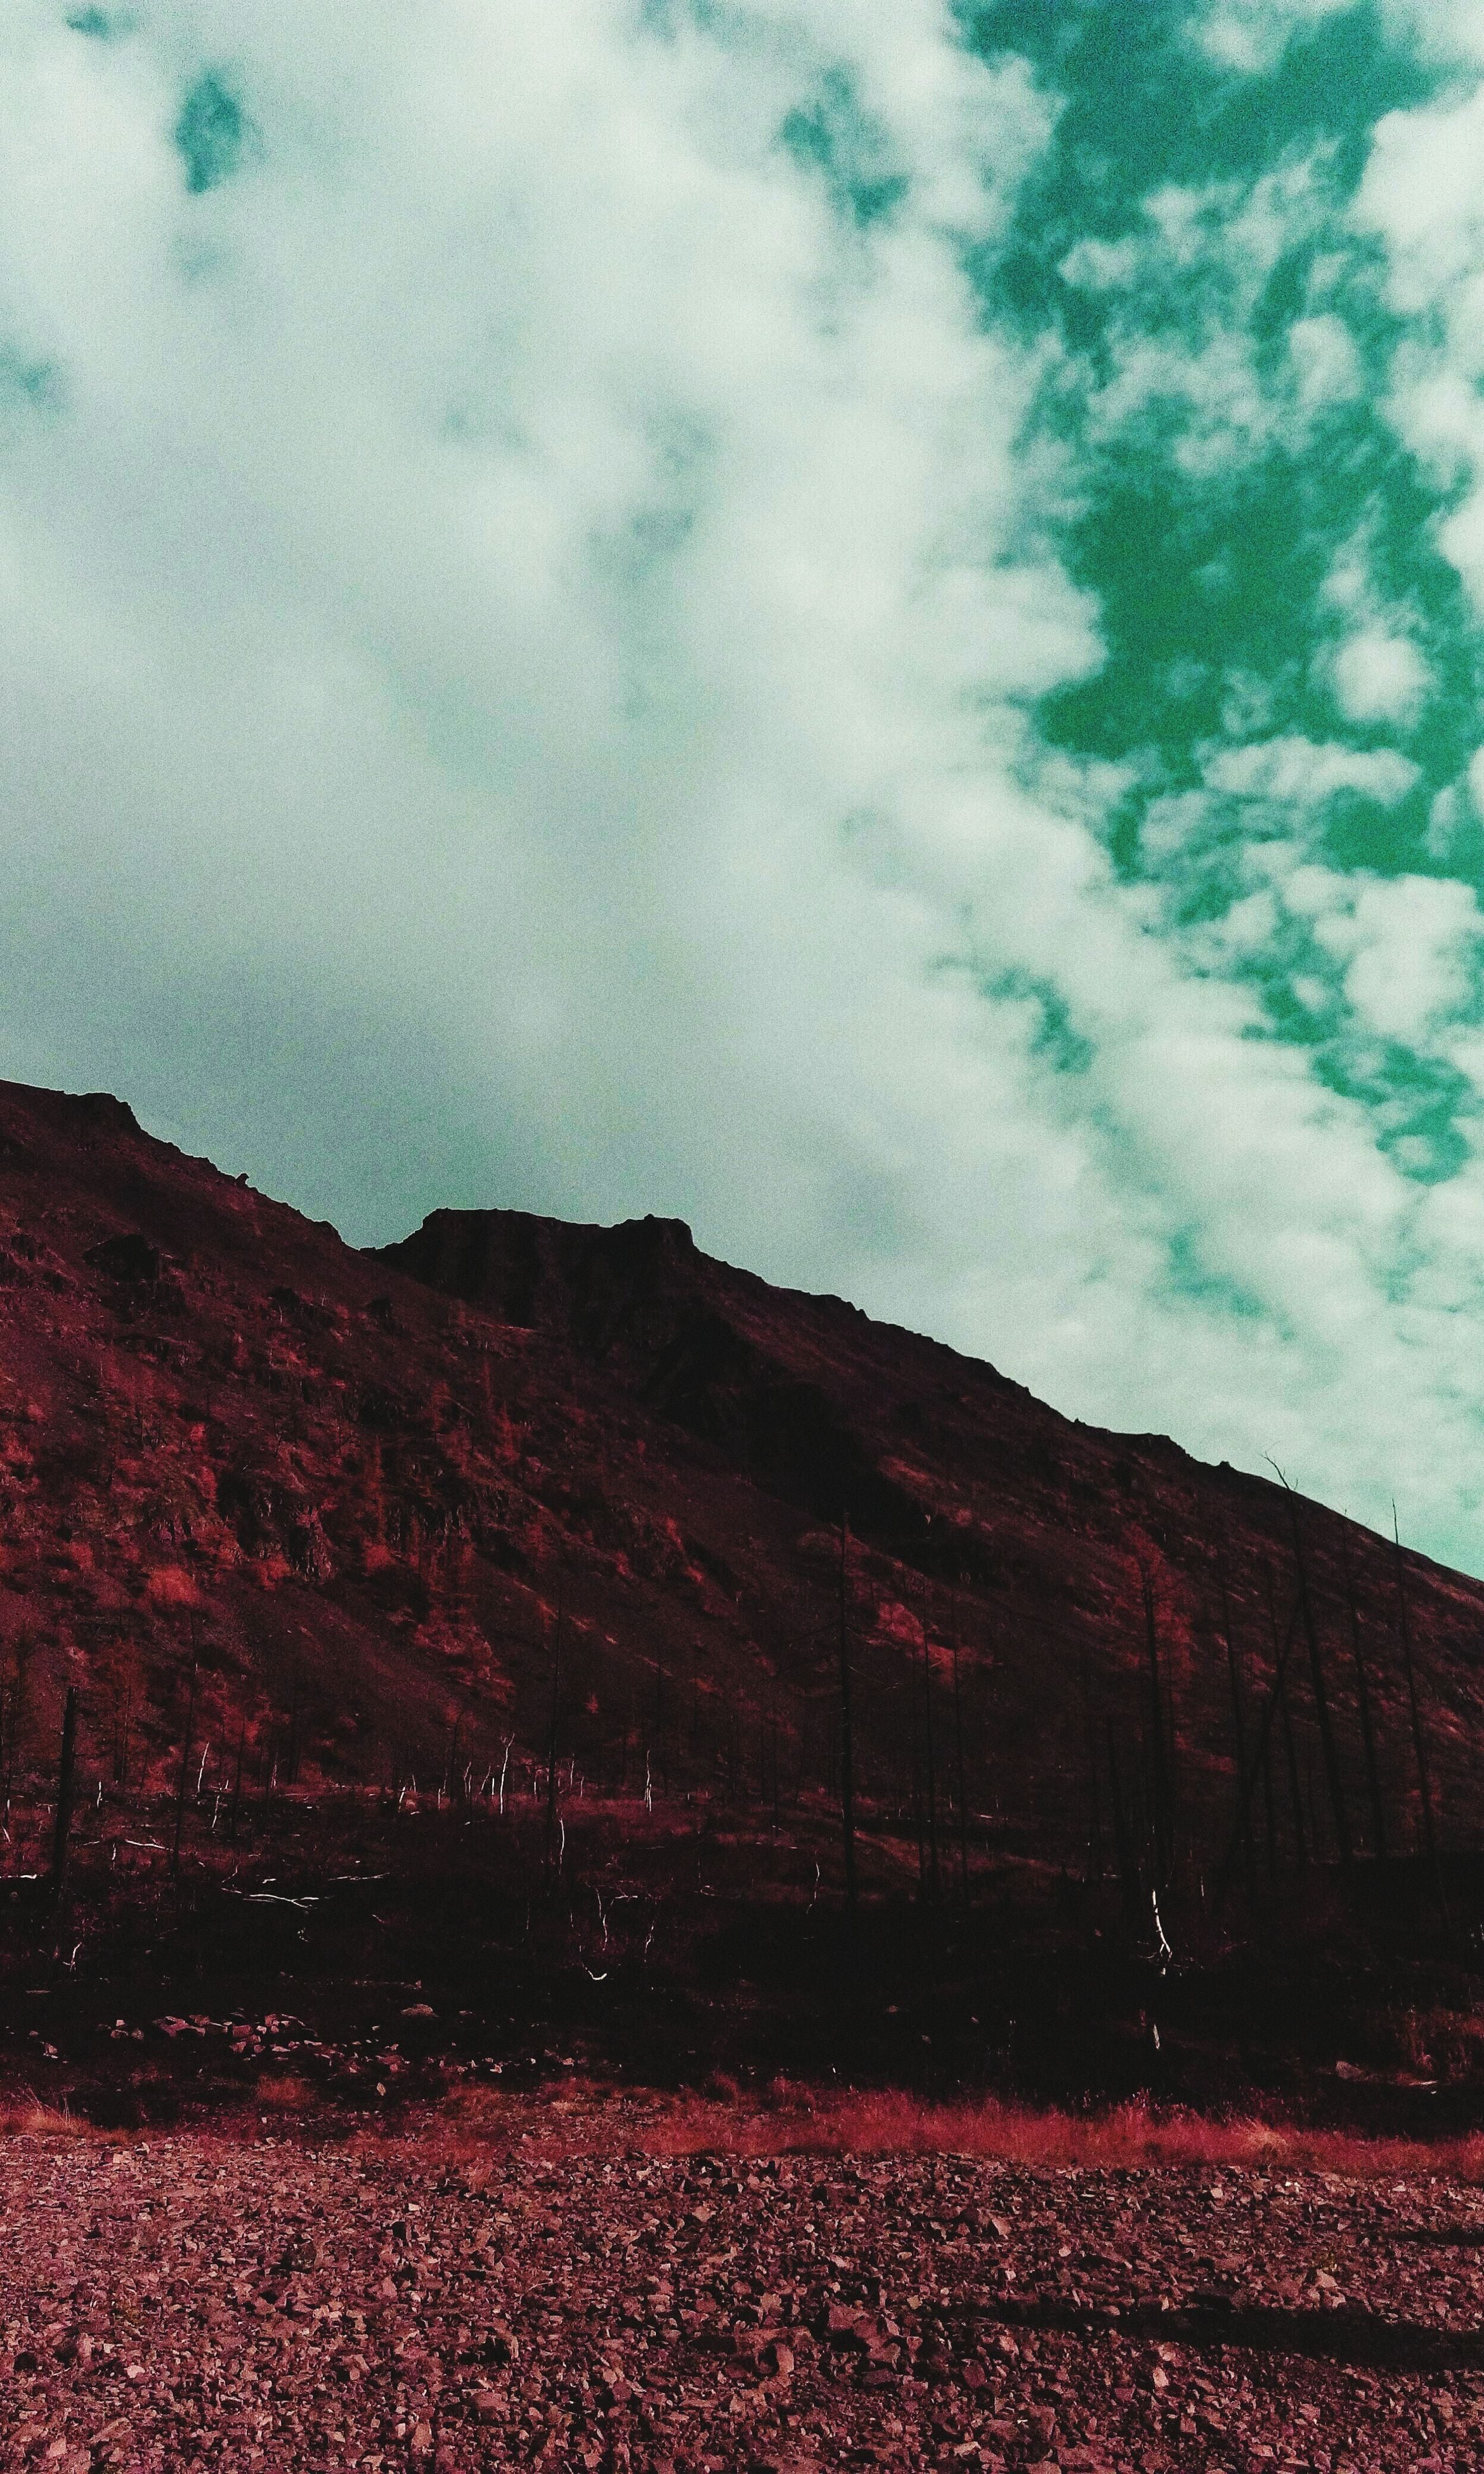 red, sky, nature, no people, outdoors, landscape, day